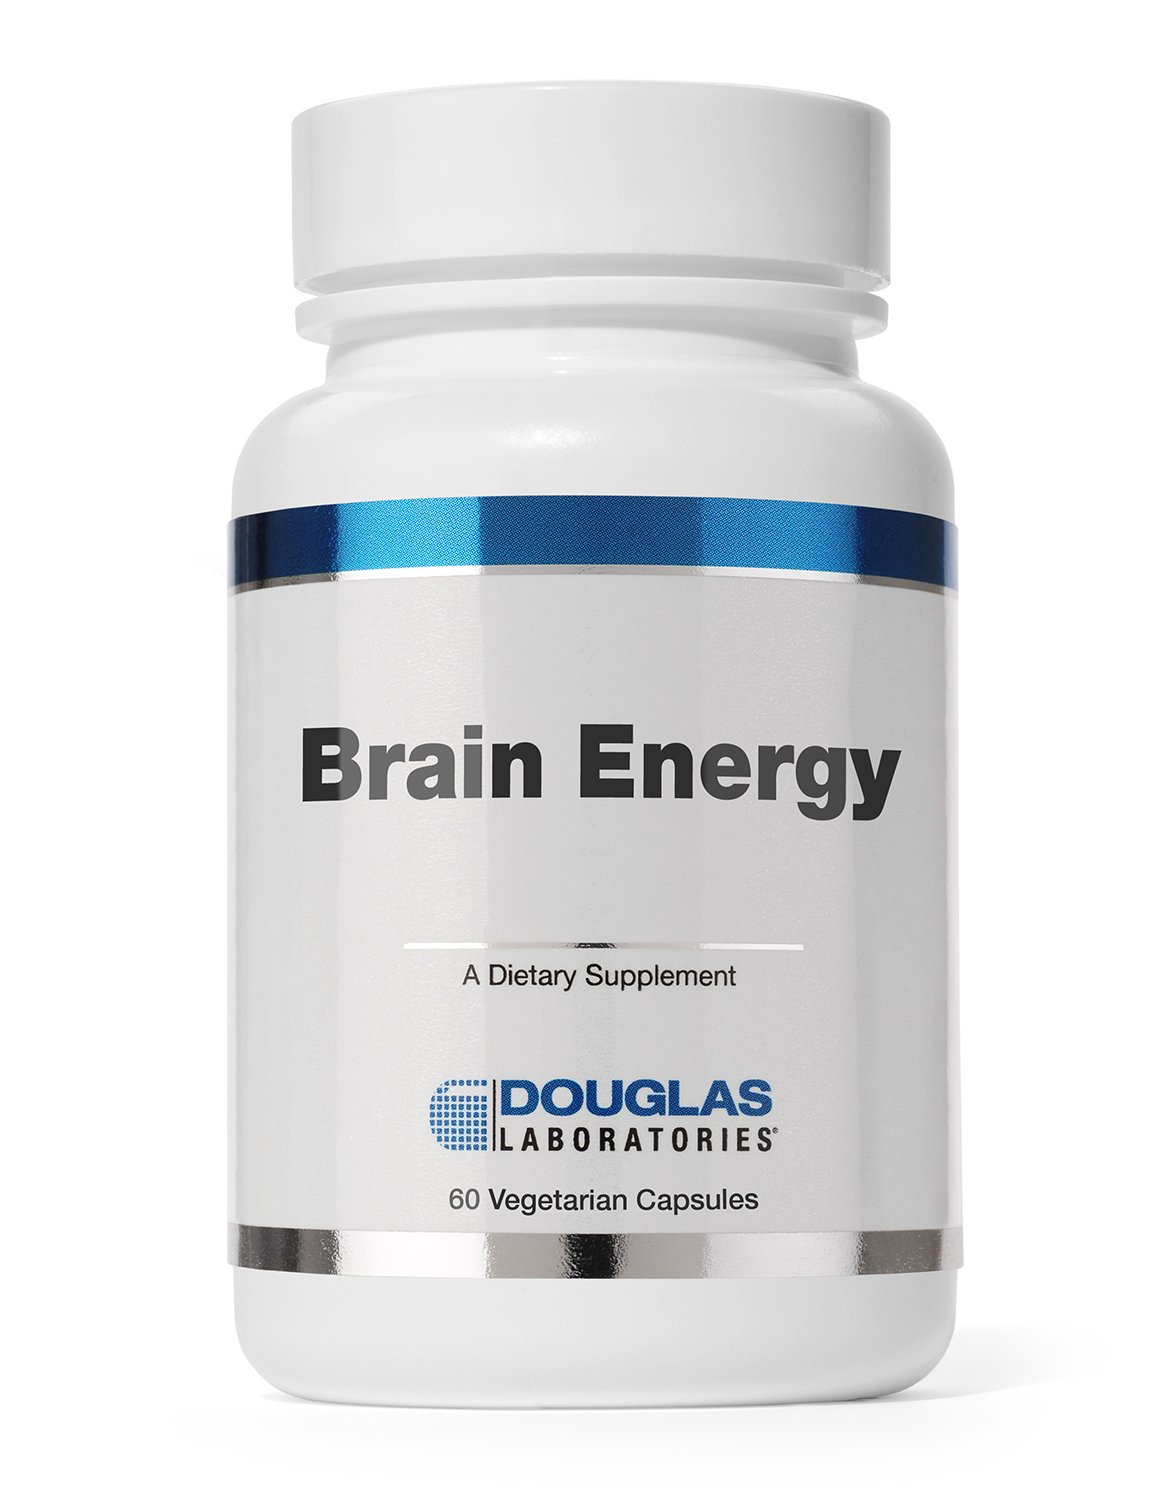 Douglas Laboratories - Brain Energy - Essential Nutrients Formulated to Nutritionally Support Increased Brain Energy* - 60 Capsules by Douglas Laboratories